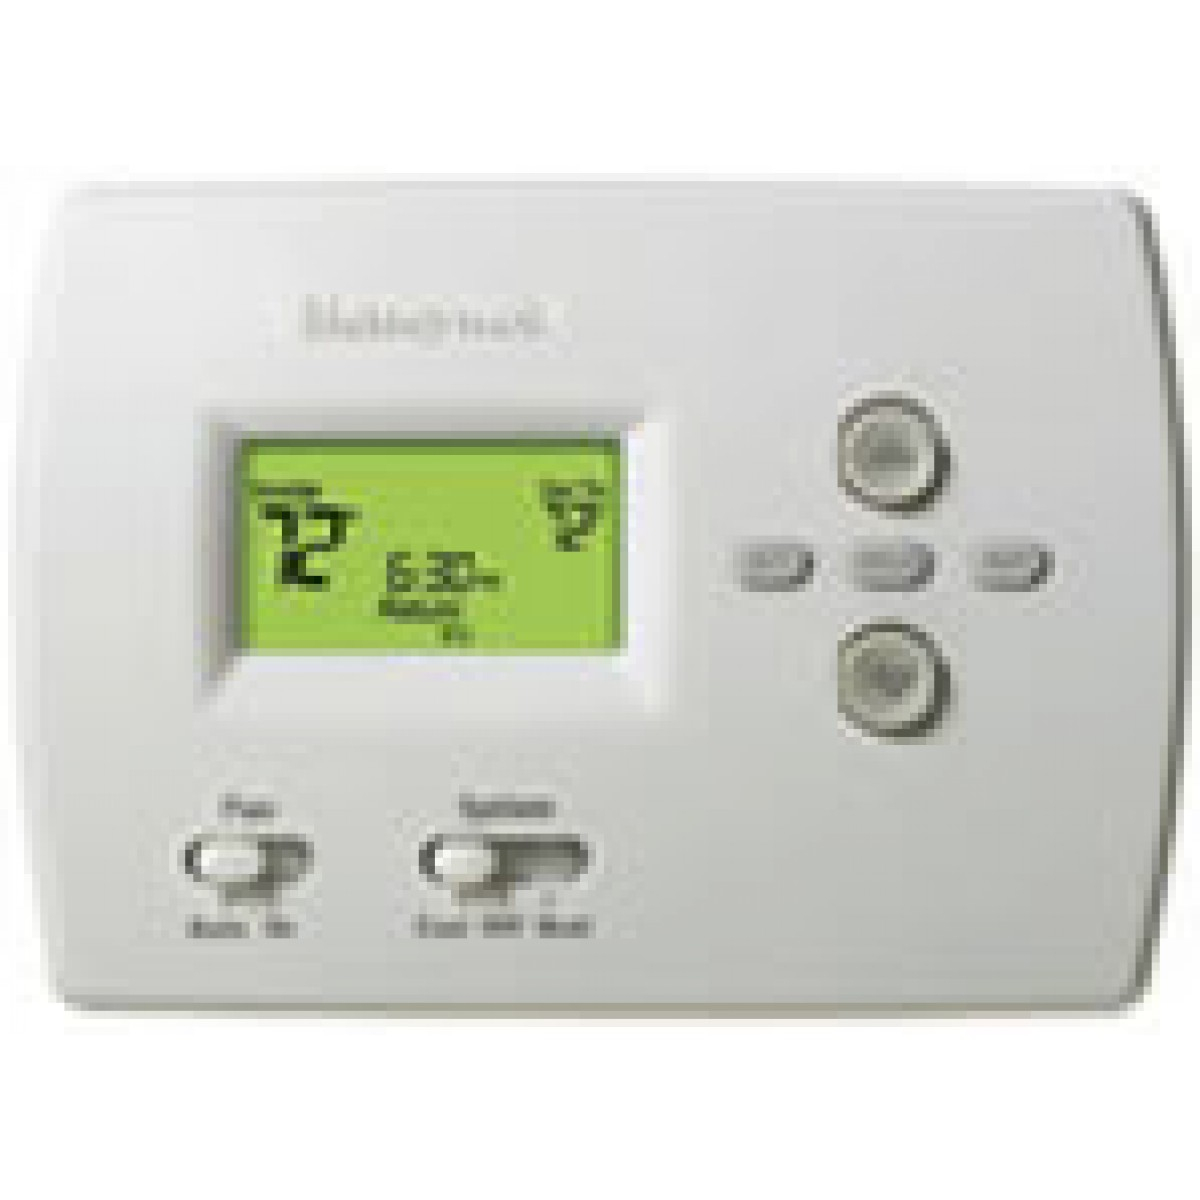 hight resolution of honeywell 4000 thermostat wiring diagram wiring diagram honeywell thermostat wiring diagram 3 wire